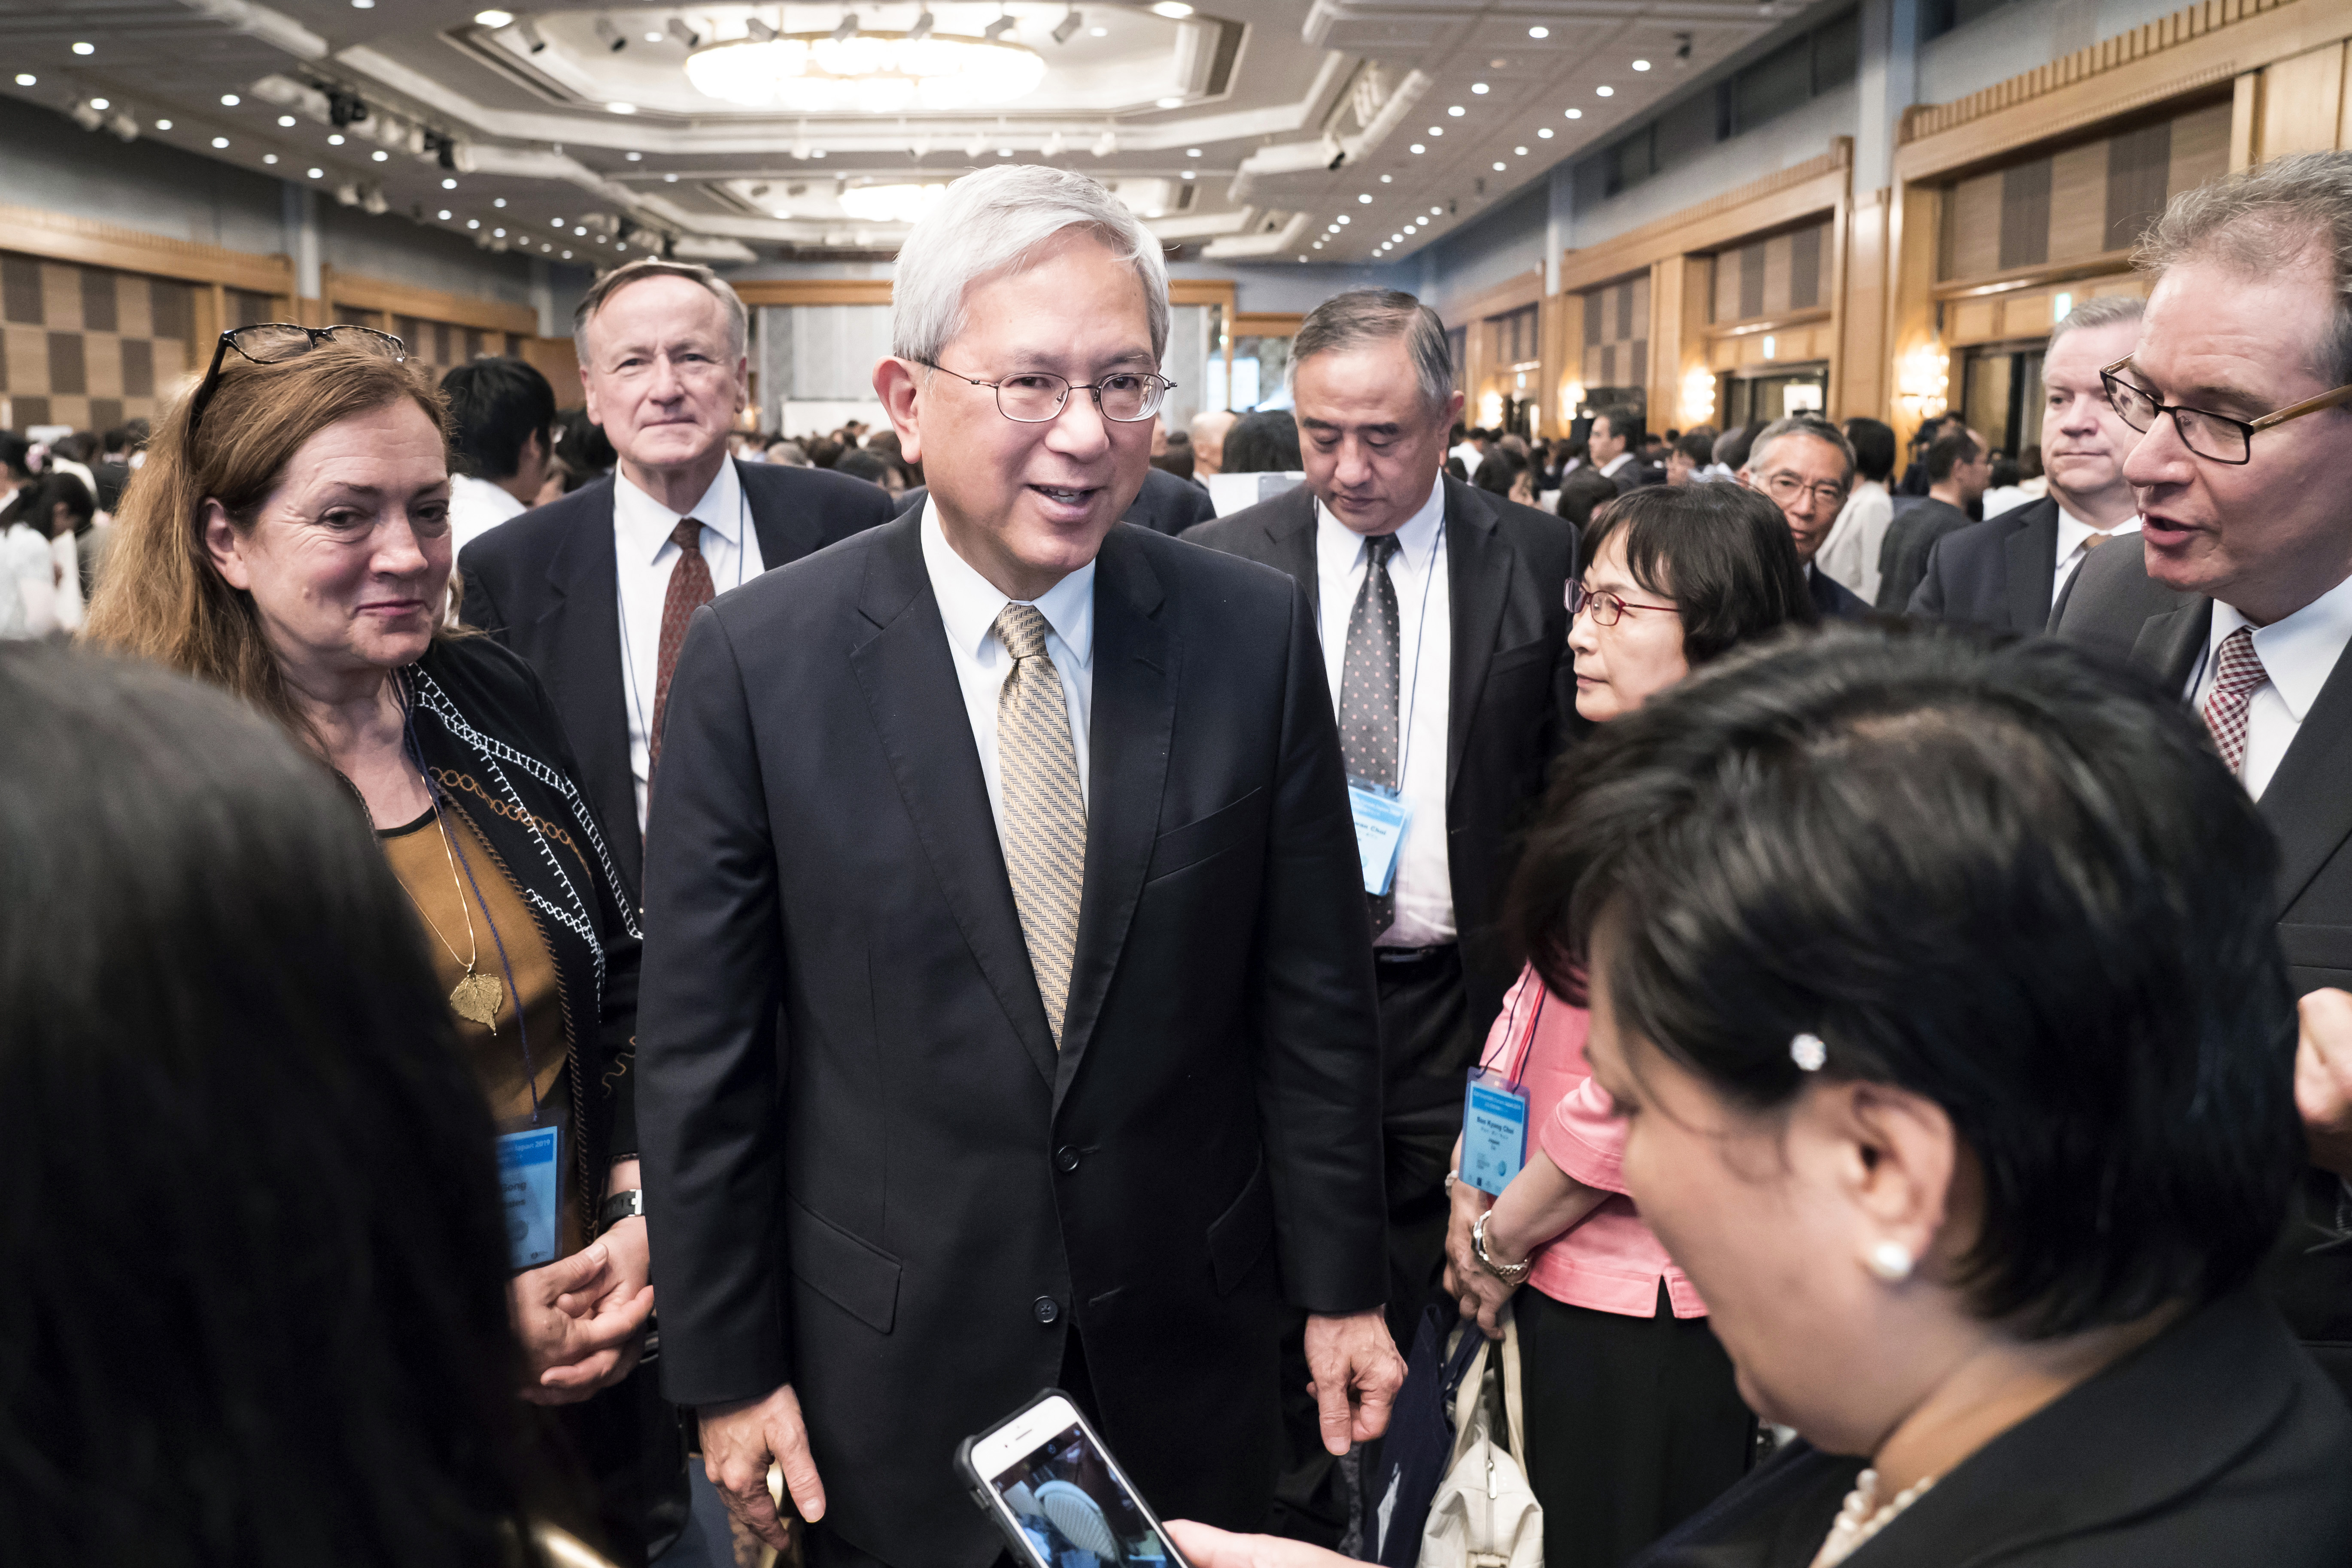 Elder Gerrit W. Gong of the Quorum of the Twelve Apostles of The Church of Jesus Christ of Latter-day Saints, center left, is surrounded by attendees after a session during the G20 Interfaith Forum in Chiba, Japan, on Saturday, June 8, 2019.